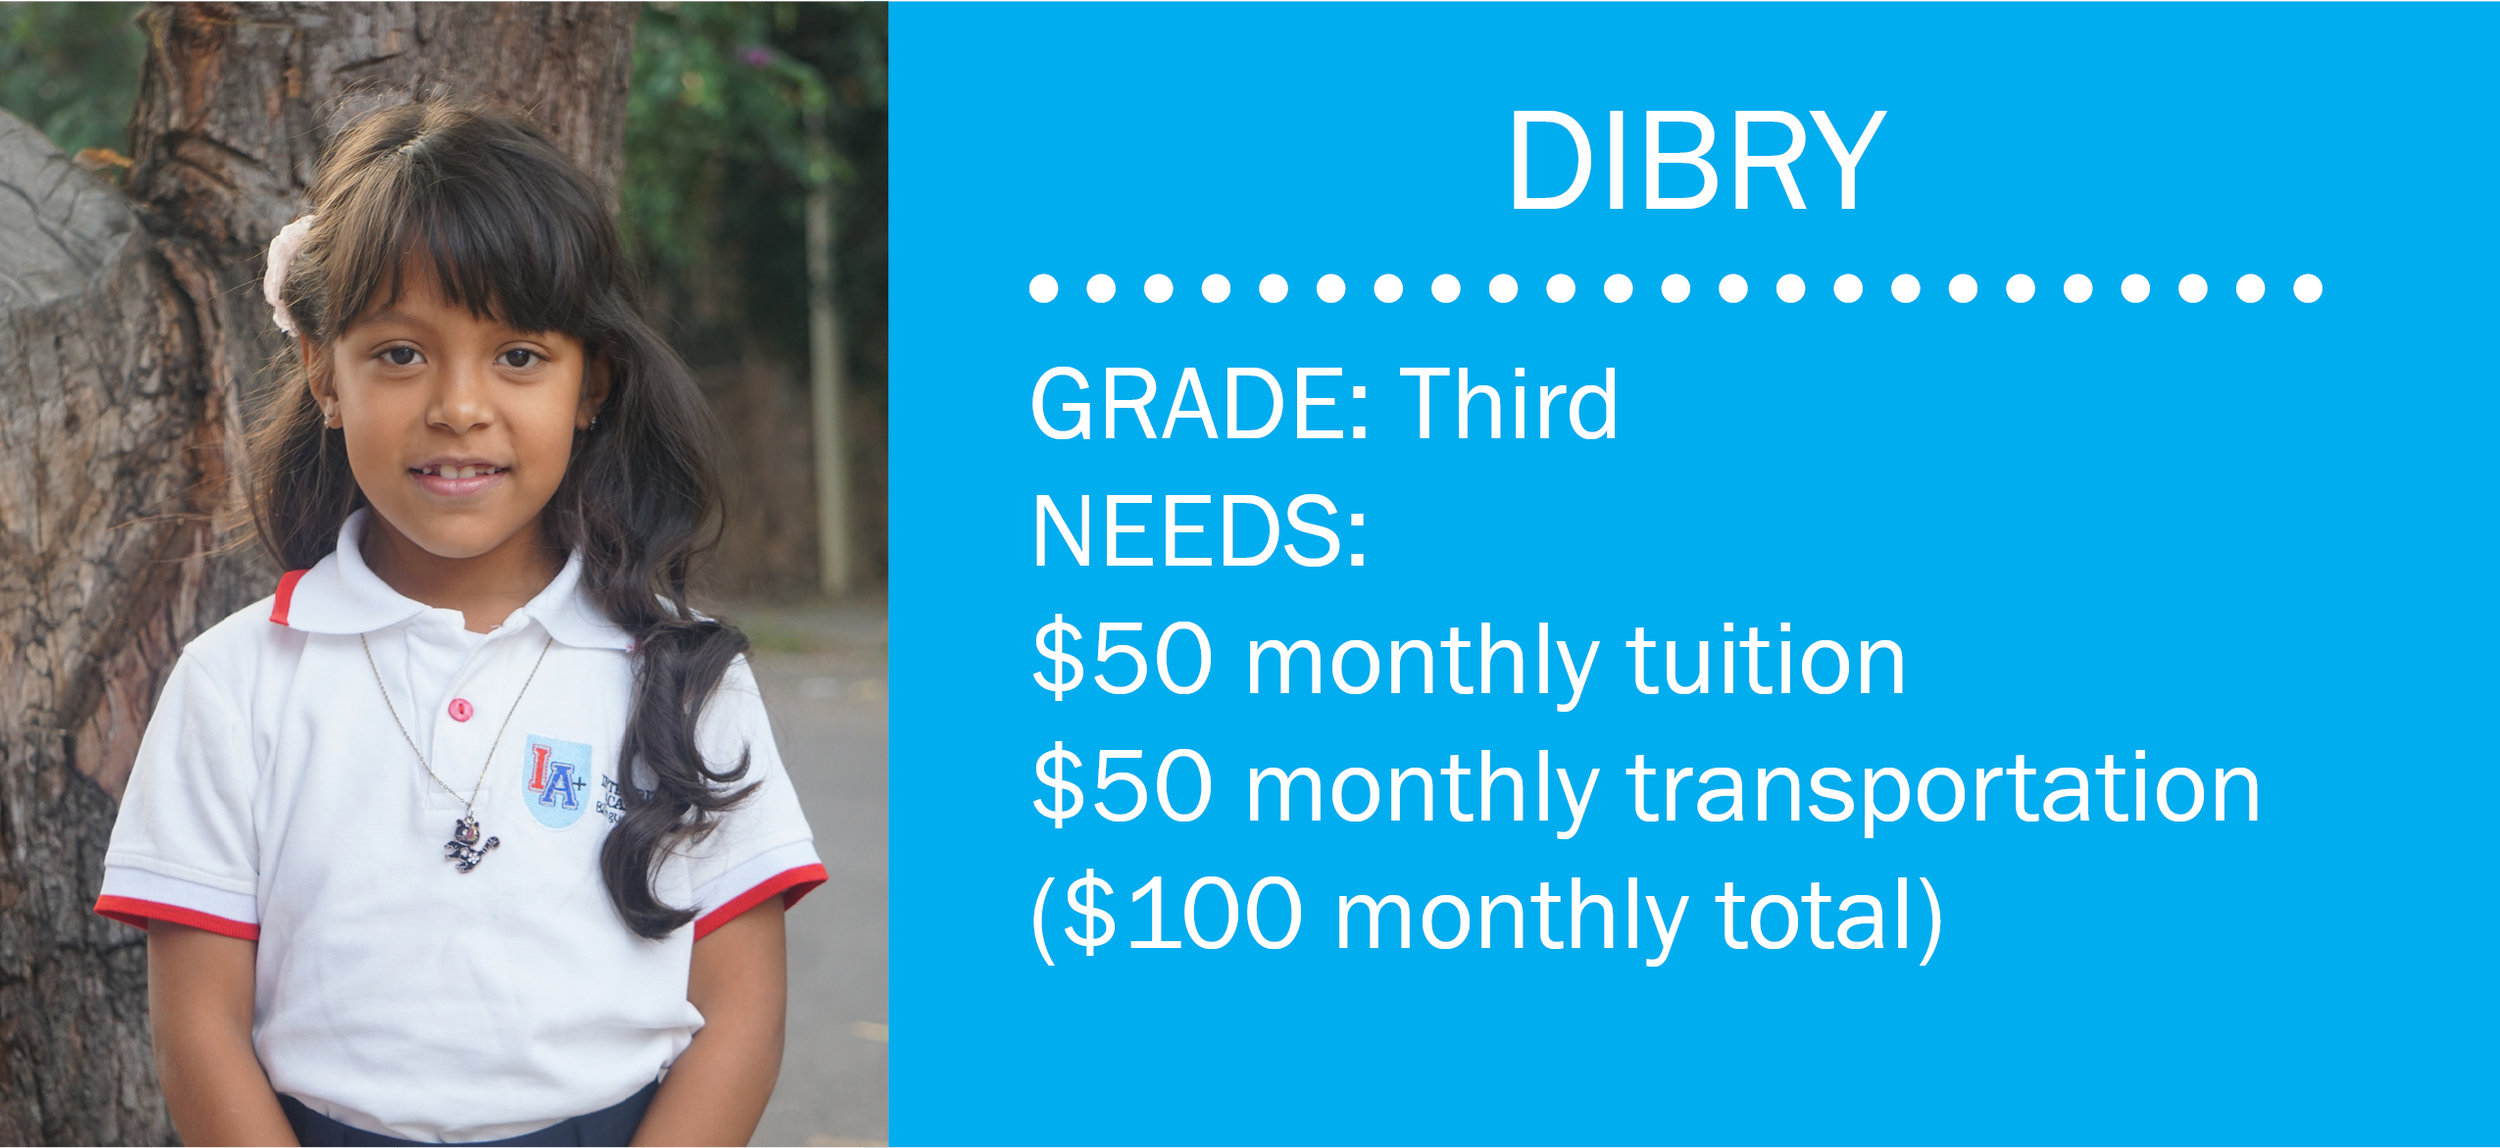 Click here to make a contribution toward Dibry's monthly needs.  Or email mail@bchonduras.org.